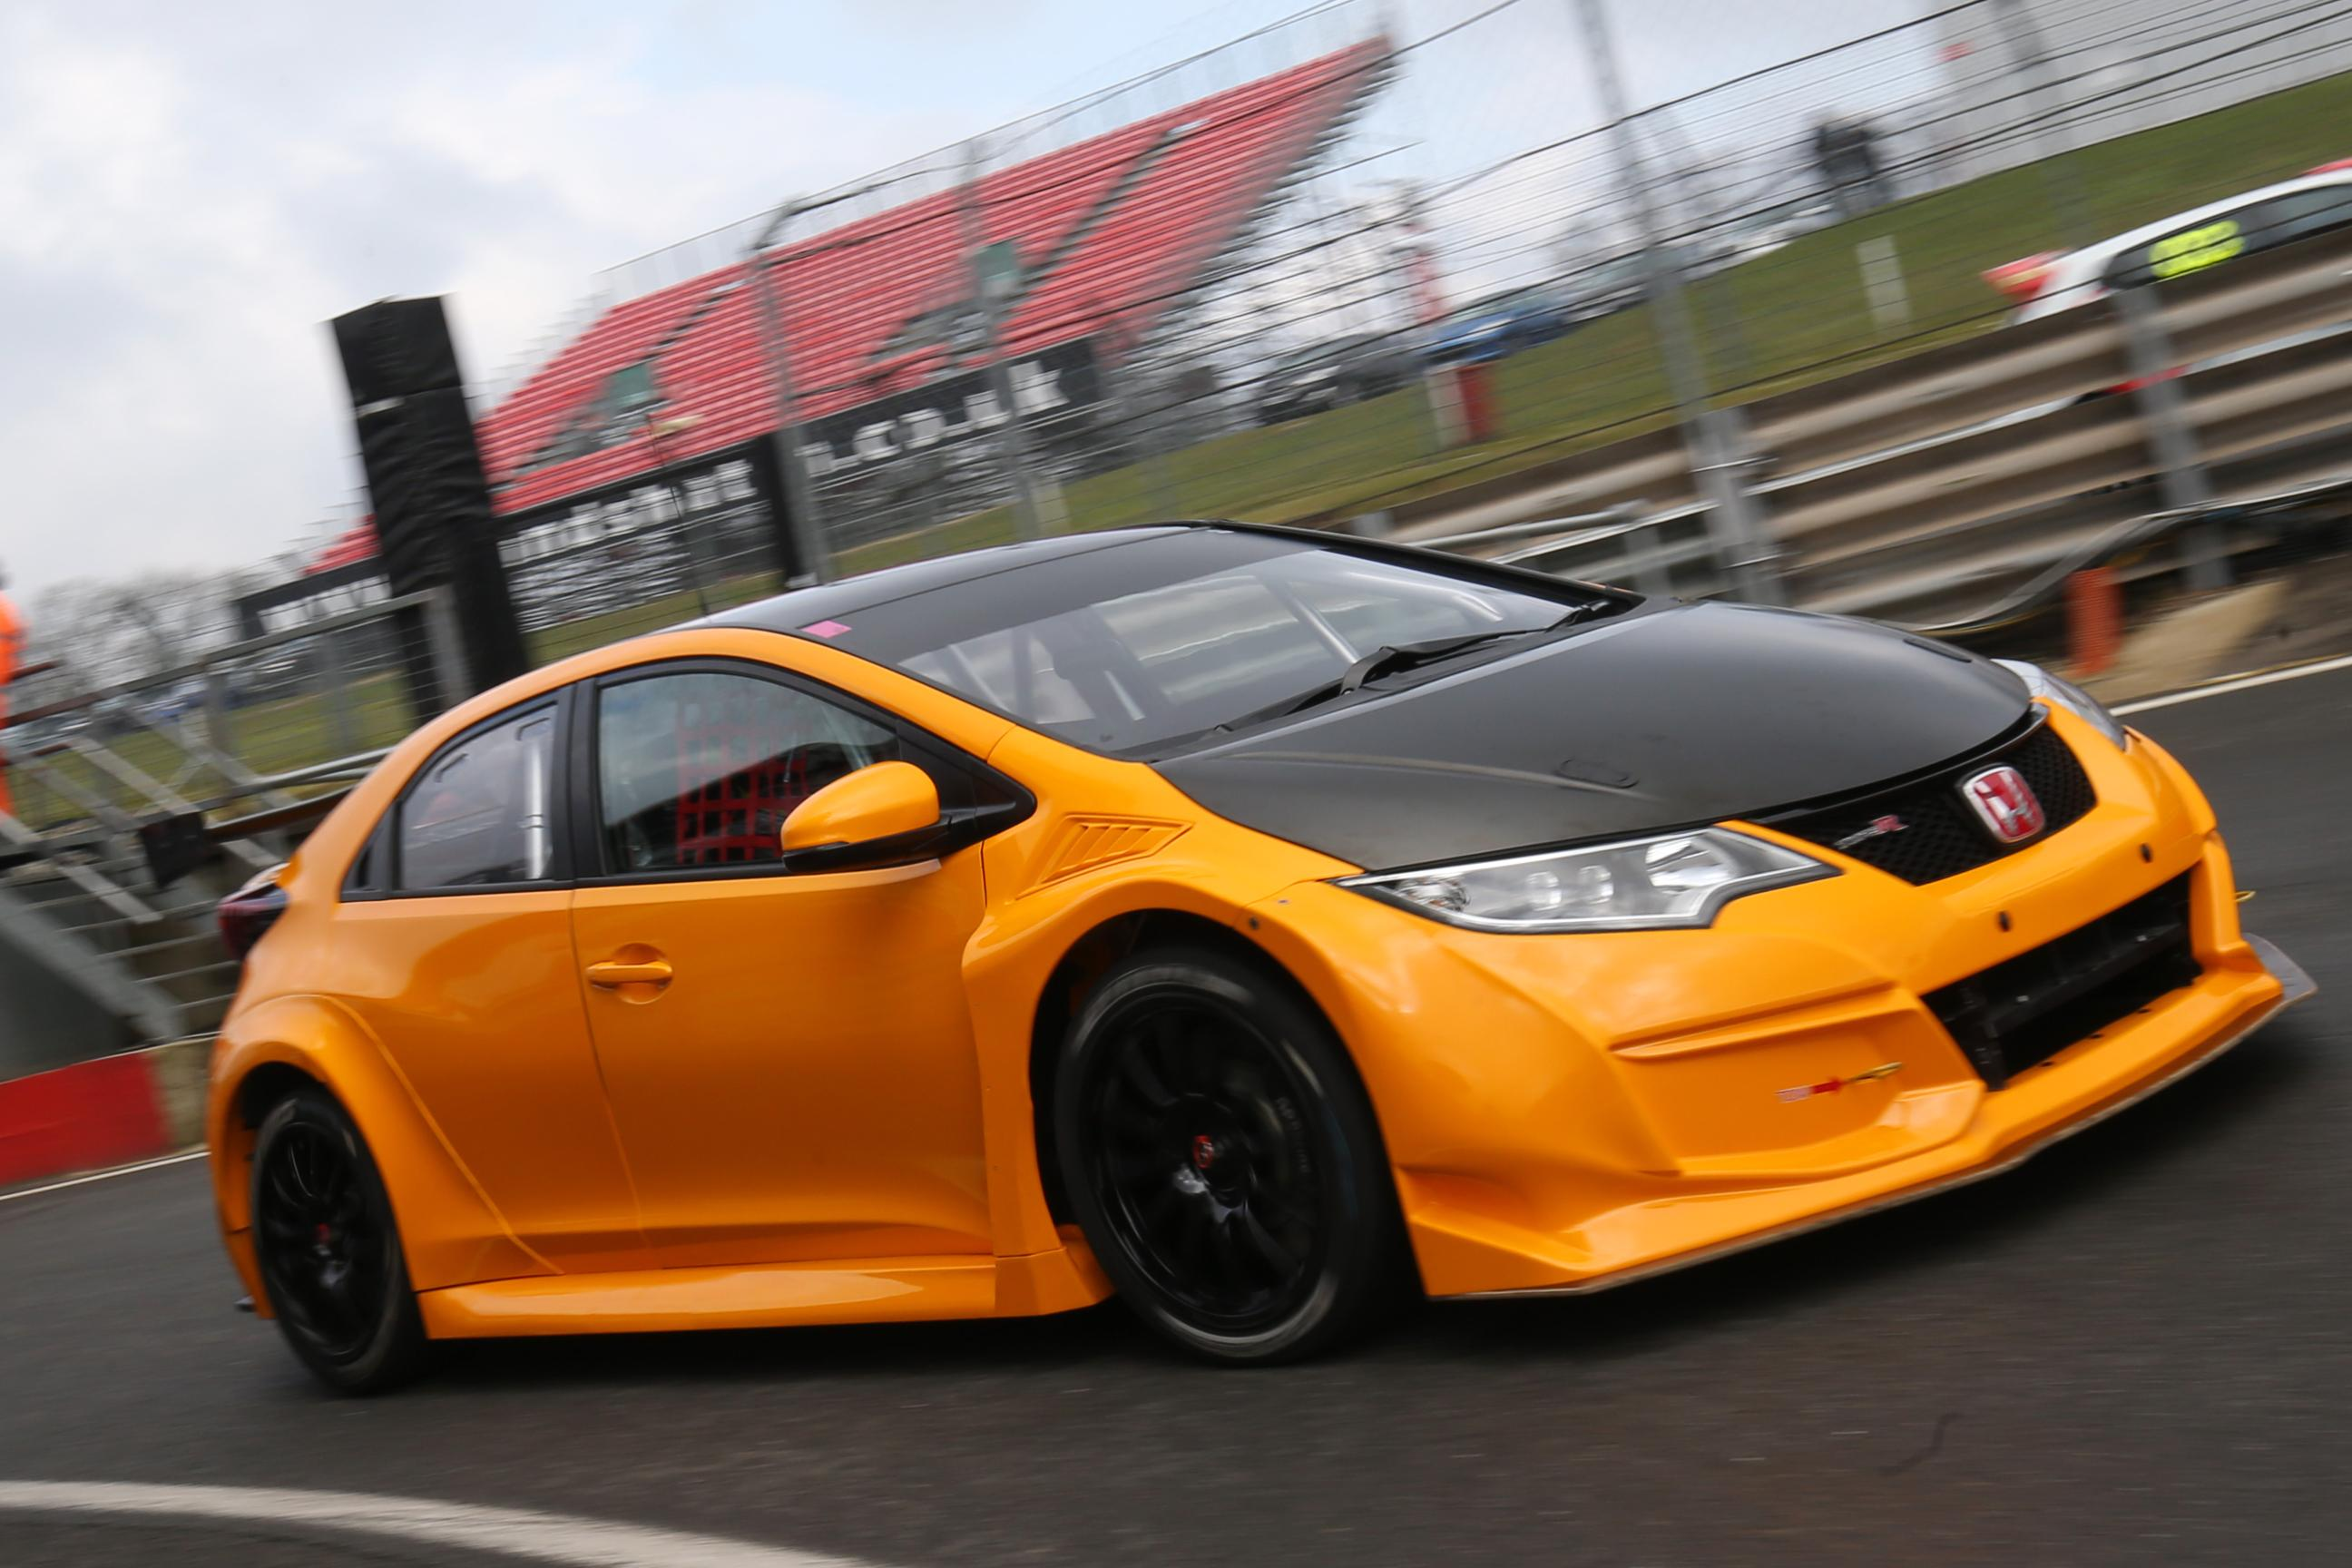 h honda civic type r btcc. Black Bedroom Furniture Sets. Home Design Ideas